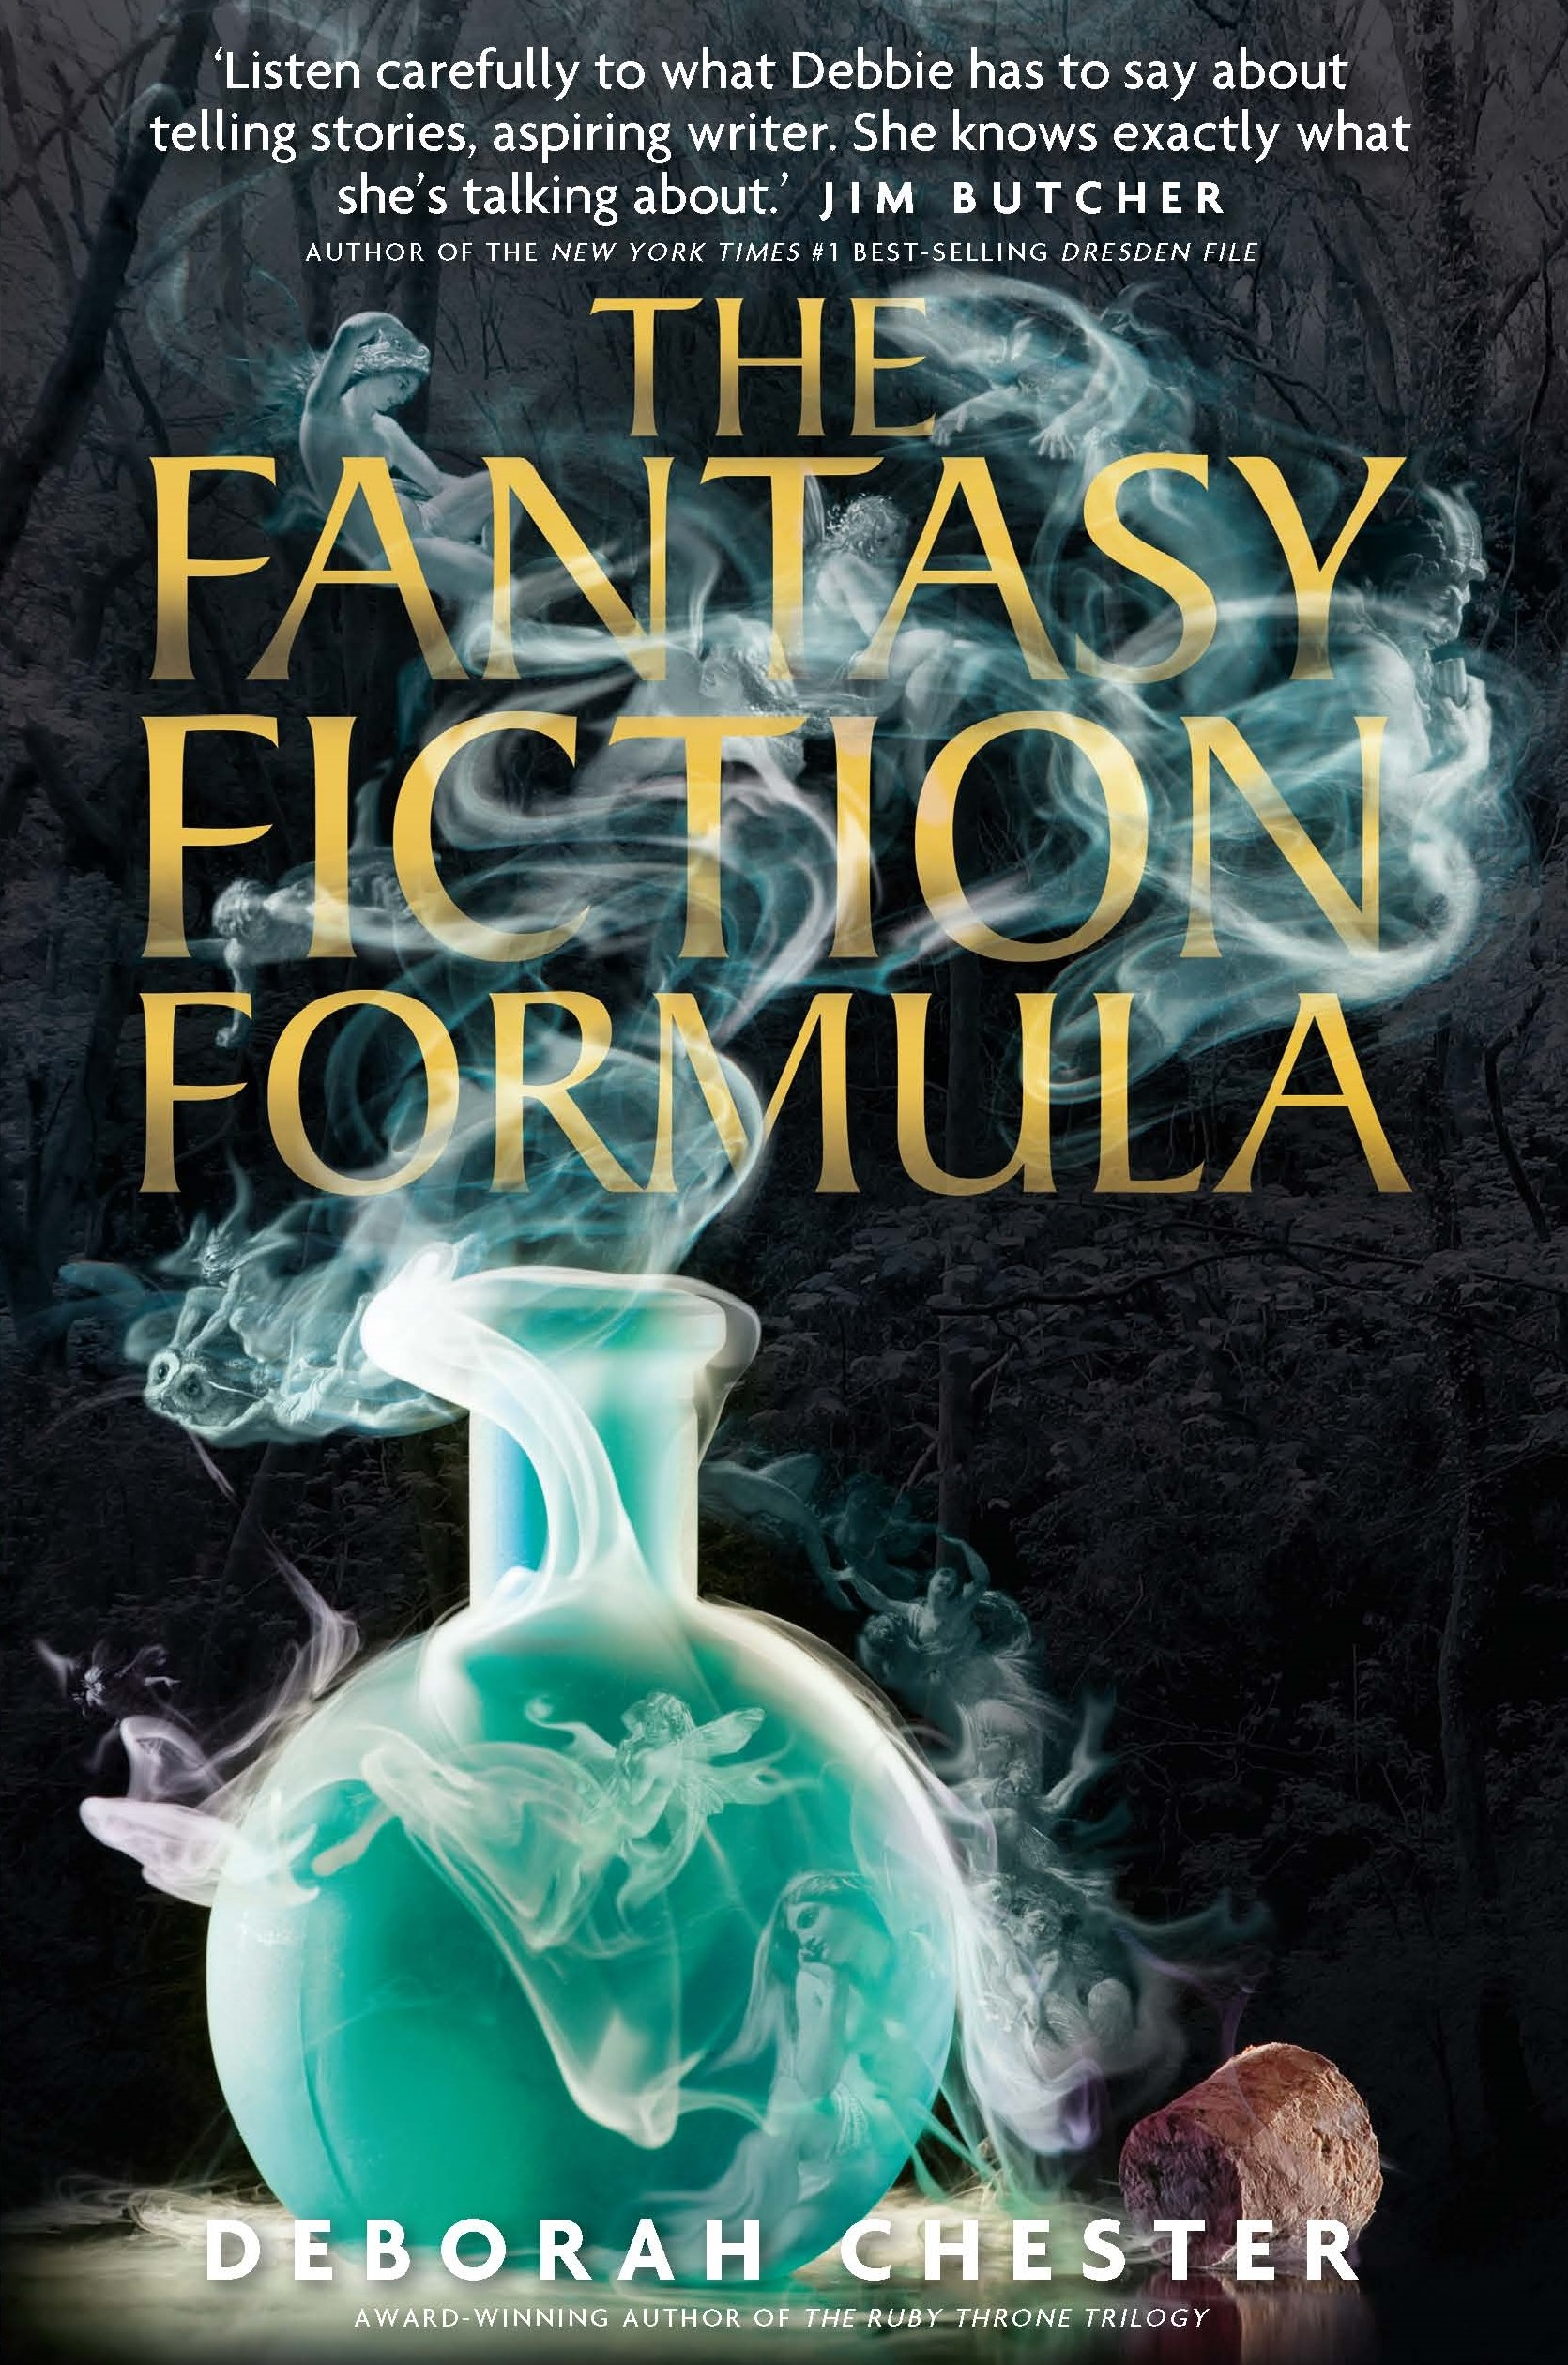 tips on writing a fantasy novel The 3 golden rules of writing a science fiction book but it's likely you're writing fantasy in and some great writing tips too to keep me on track for.